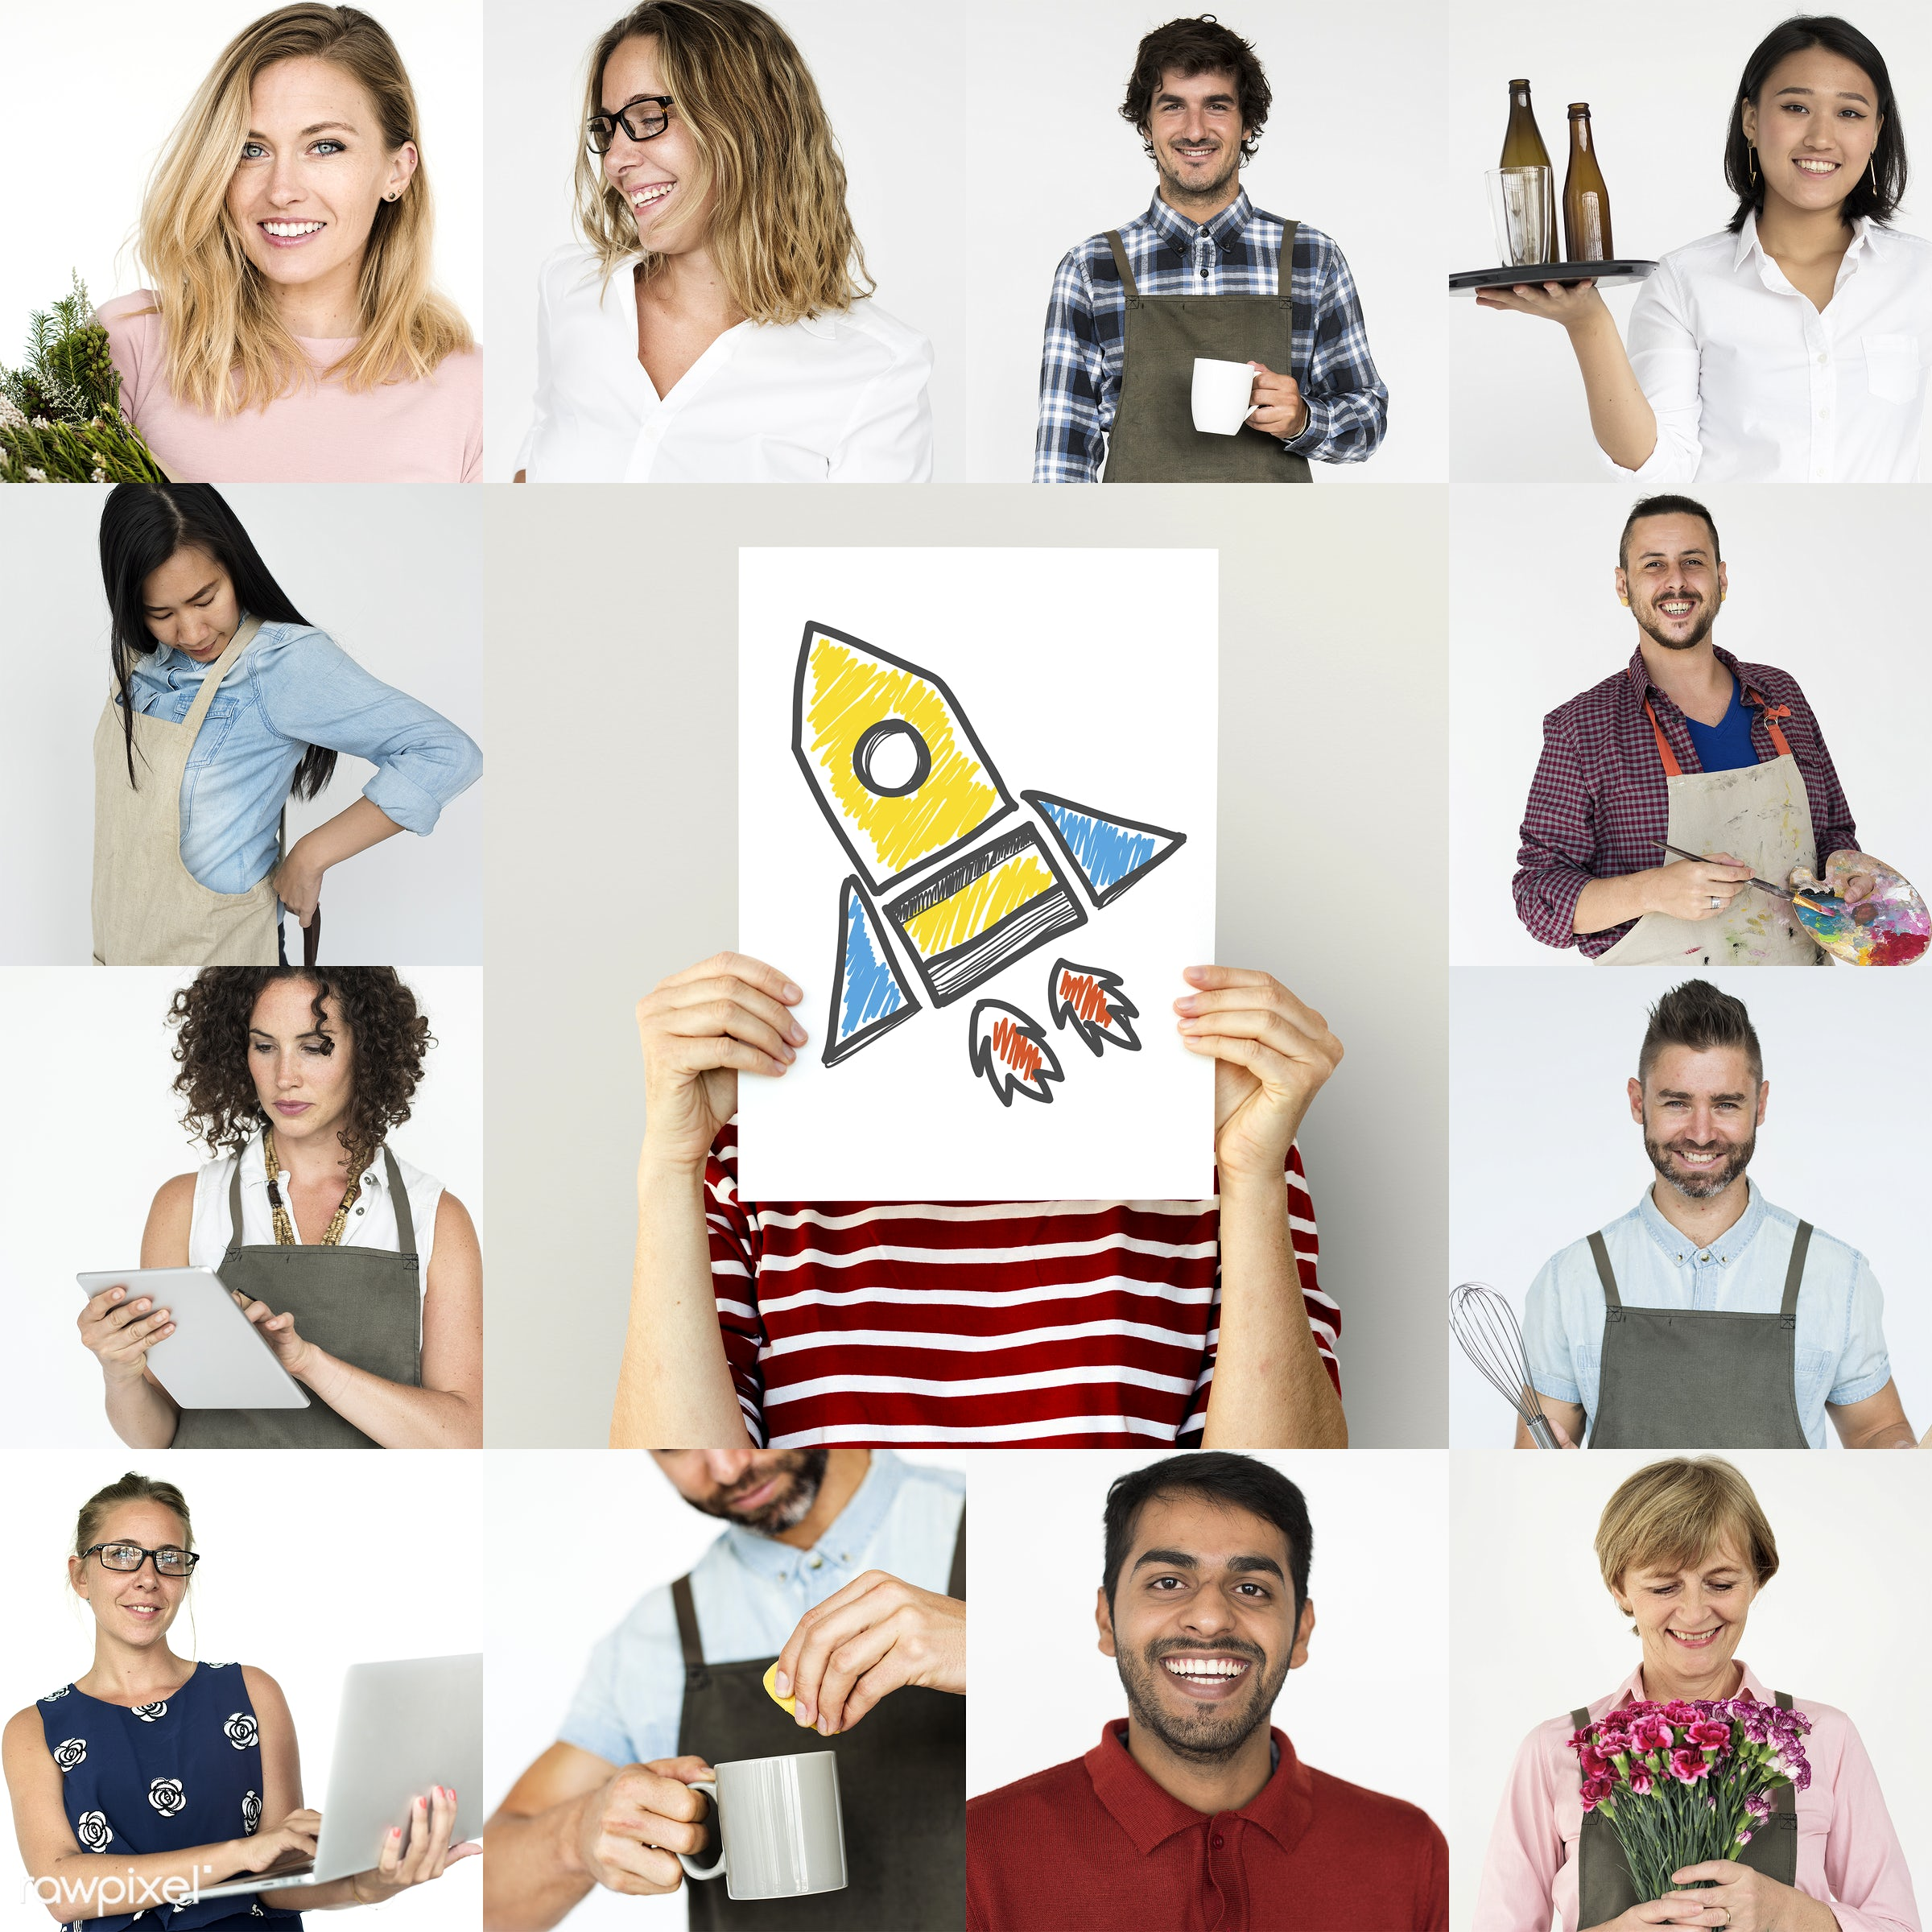 Set of portraits of people with startup concepts - expression, studio, person, people, young adult, rocket, woman, lifestyle...